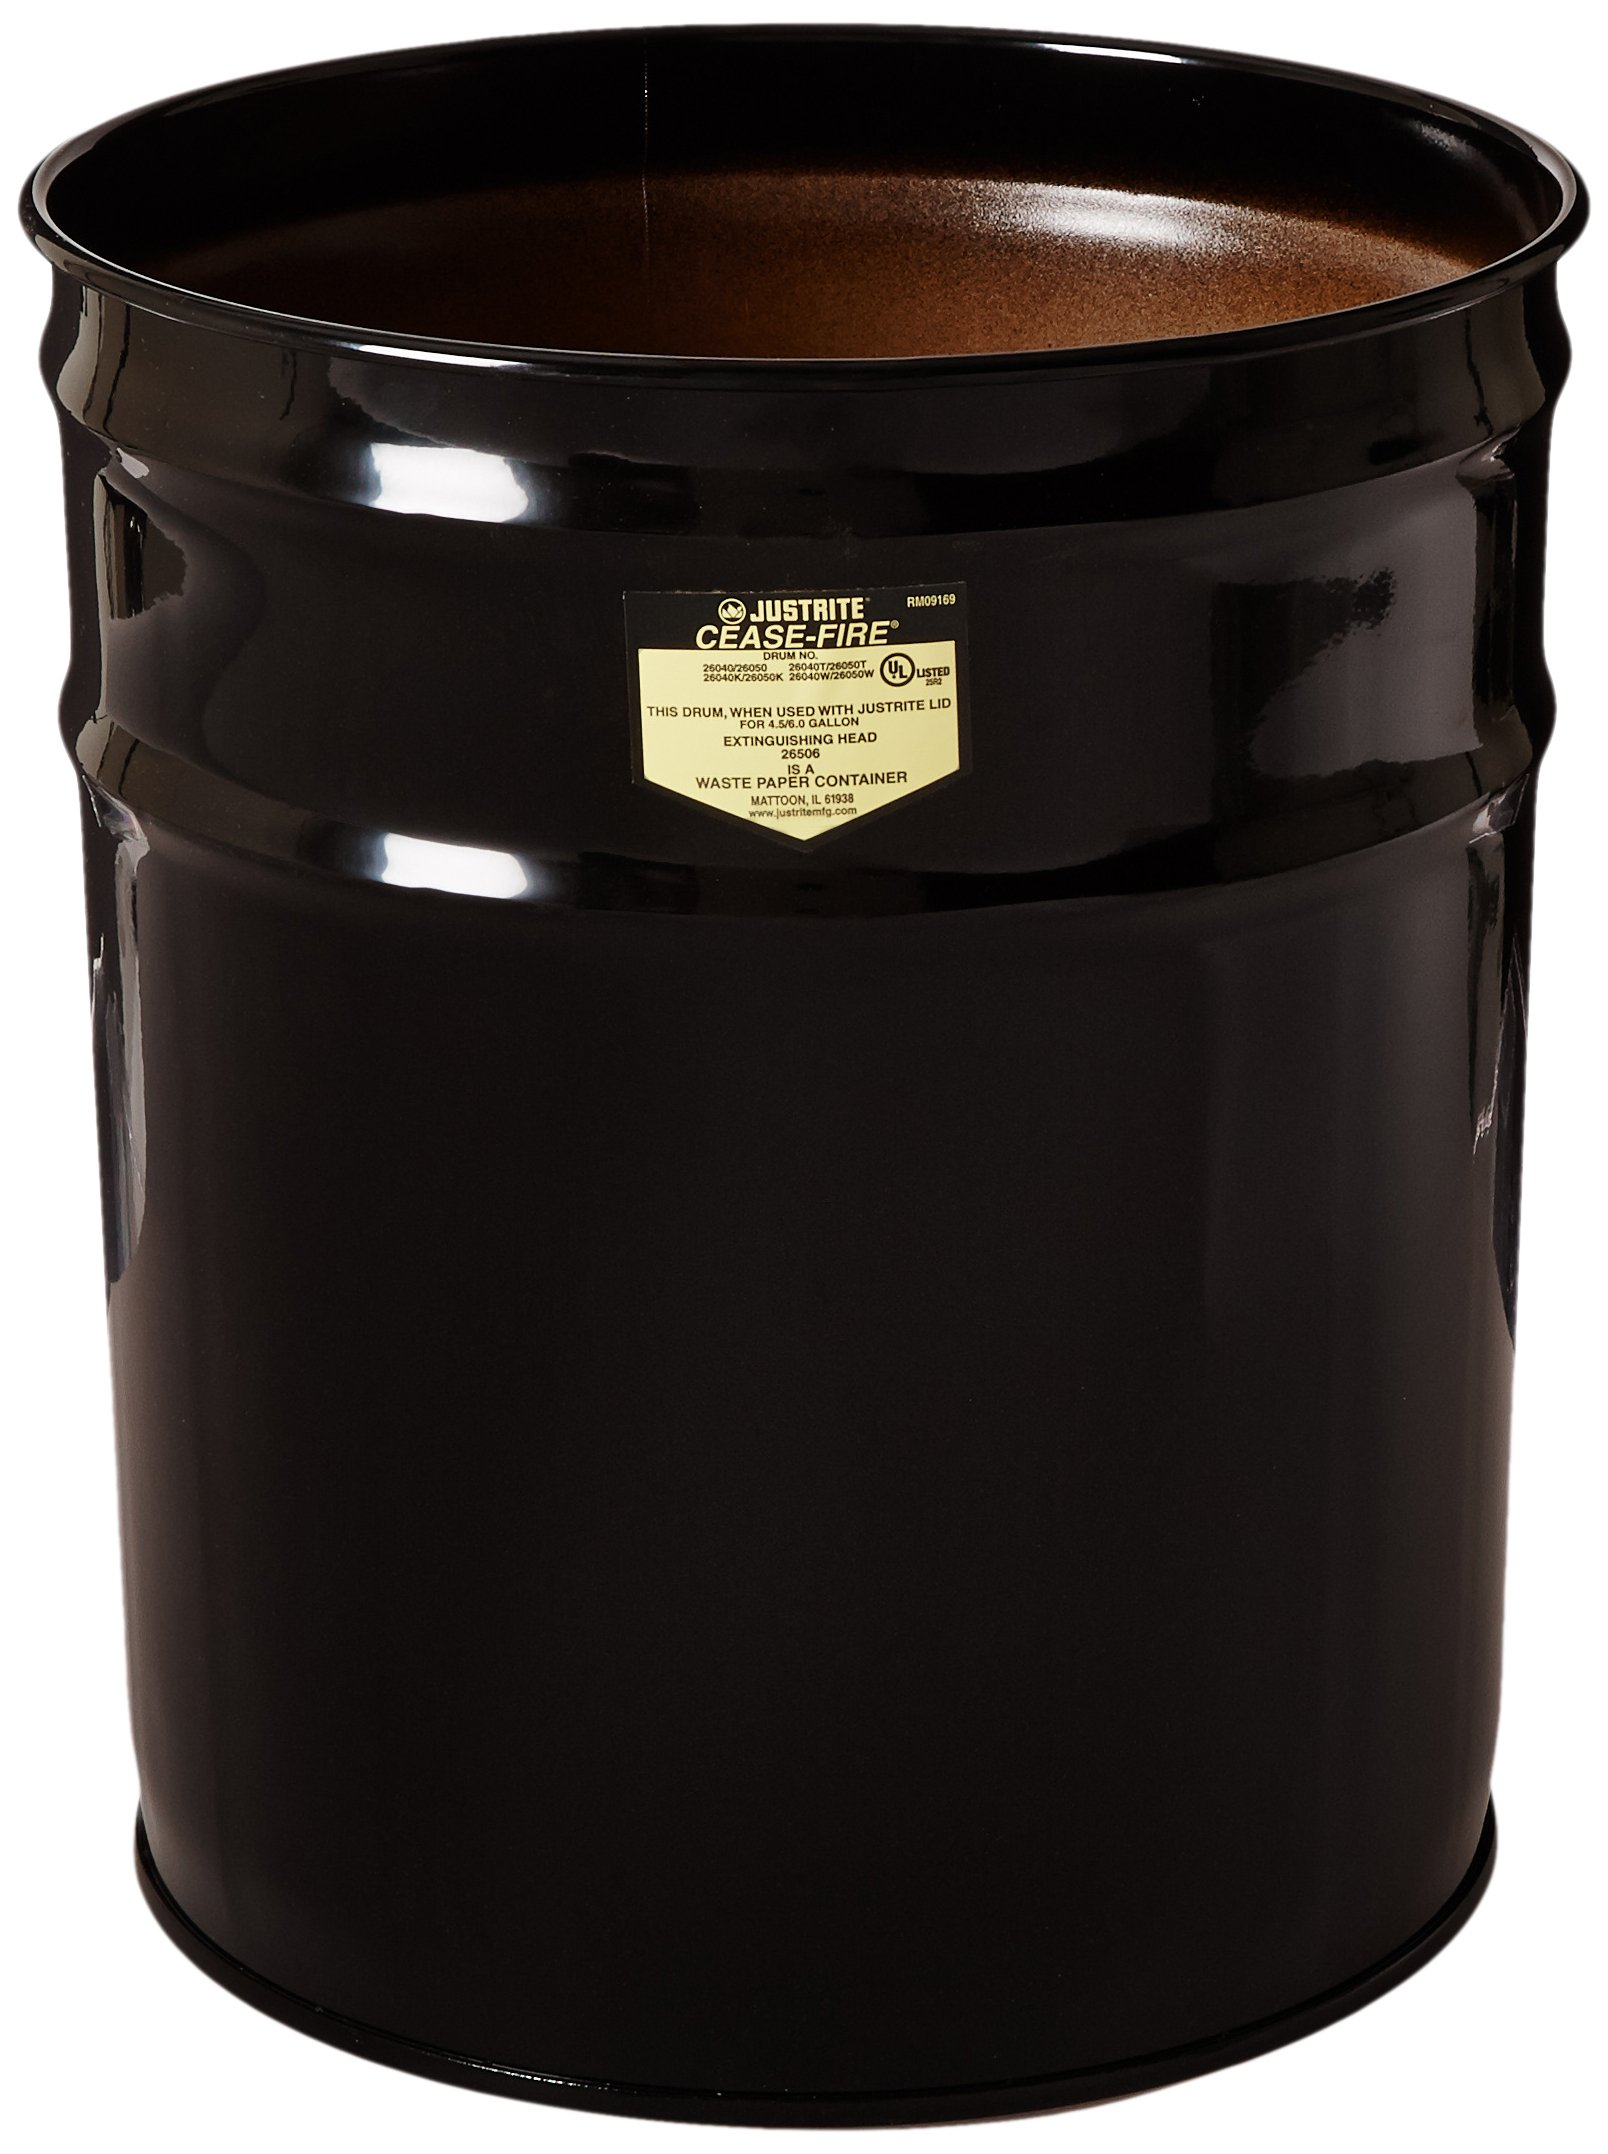 Justrite 26624K Cease-Fire Ash and Butt Receptacle with Aluminum Head and Grill Guard, 4.5 Gallon Capacity, 12-1/8'' OD x 14-1/4'' Height, Black